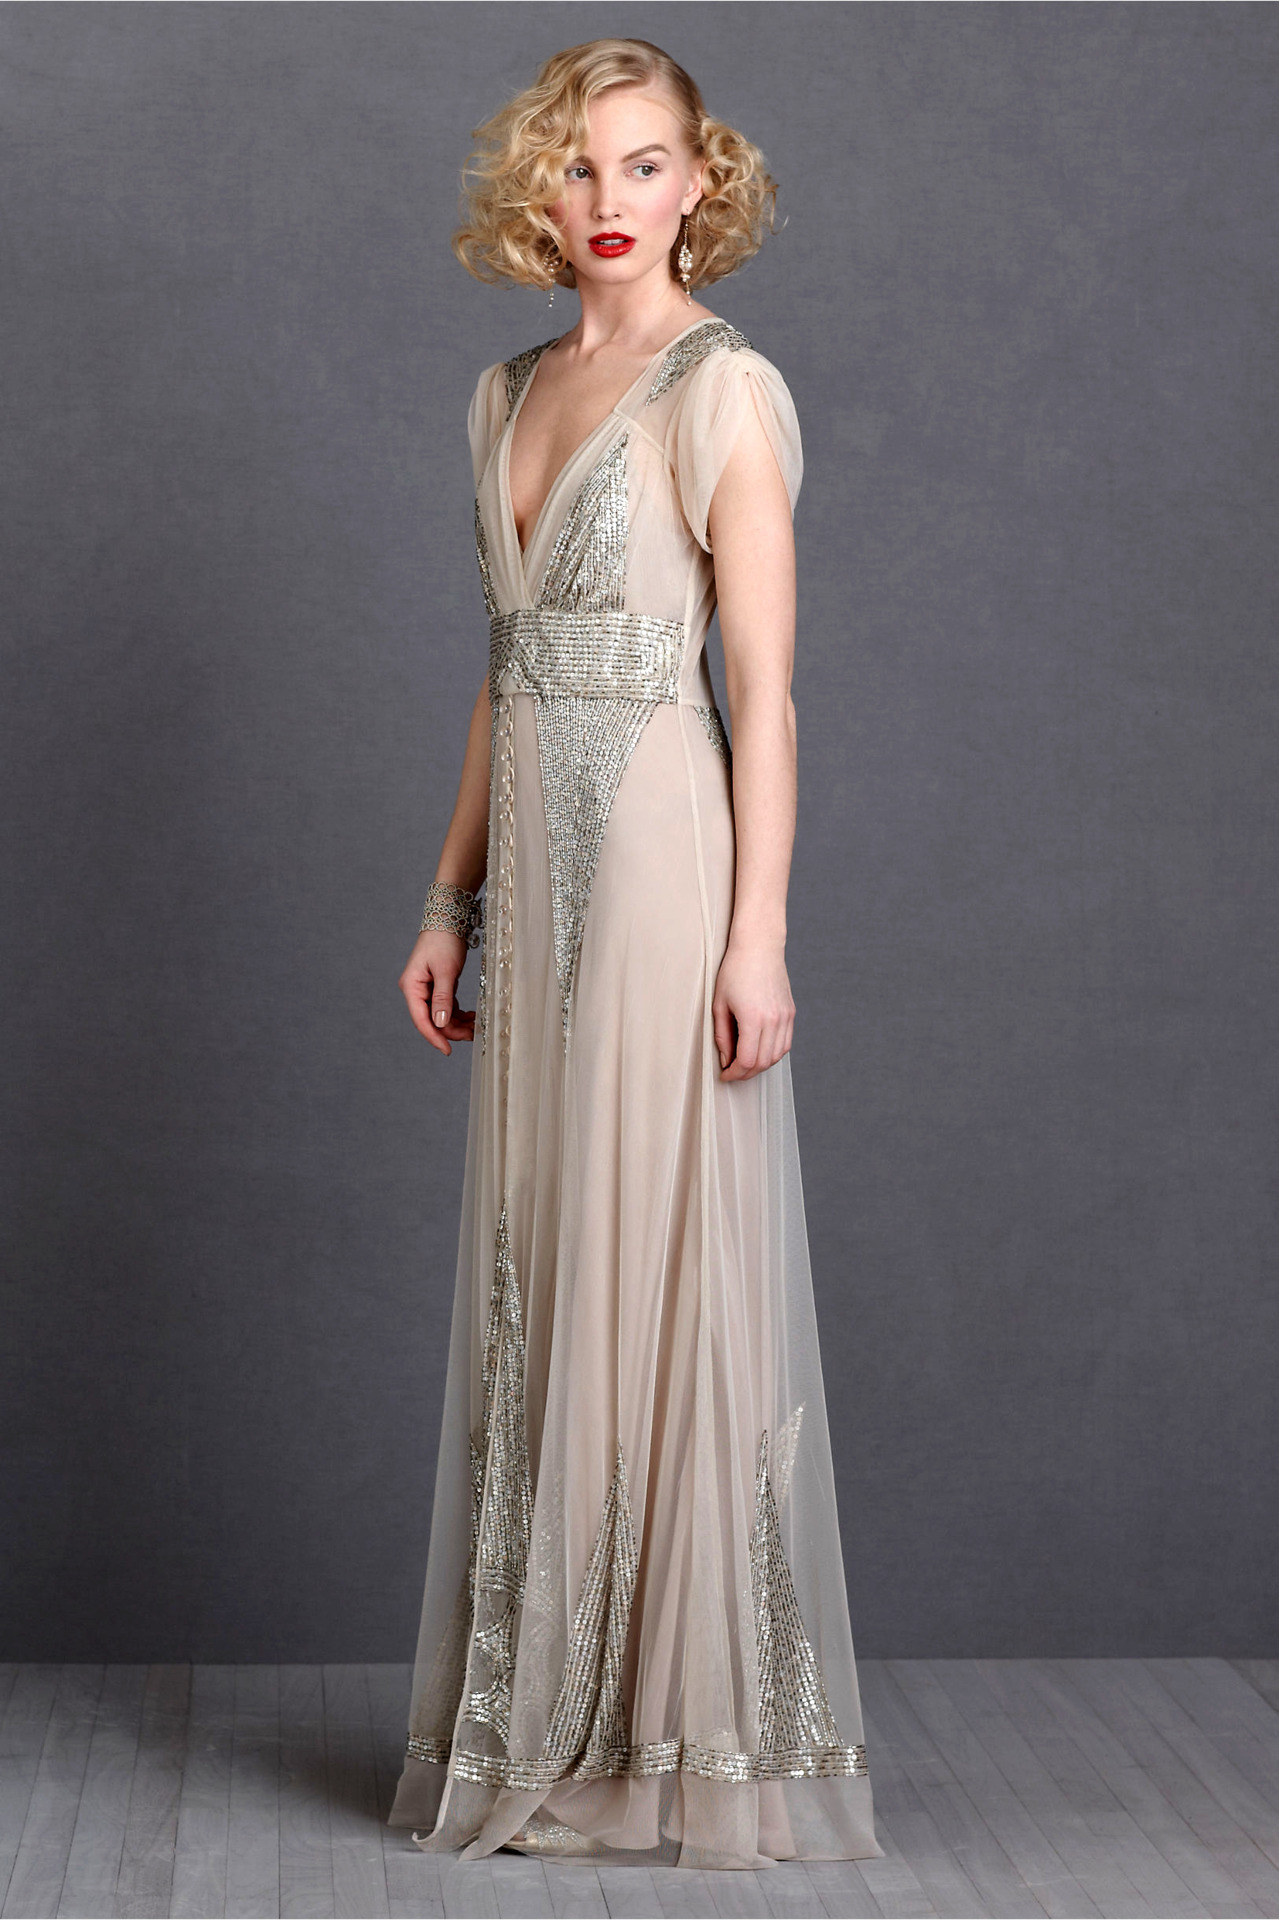 organized-clutter:  everlytrue:  [Aiguille Gown by BHLDN]  If I could do my high school prom all over again, I might wear that dress. x